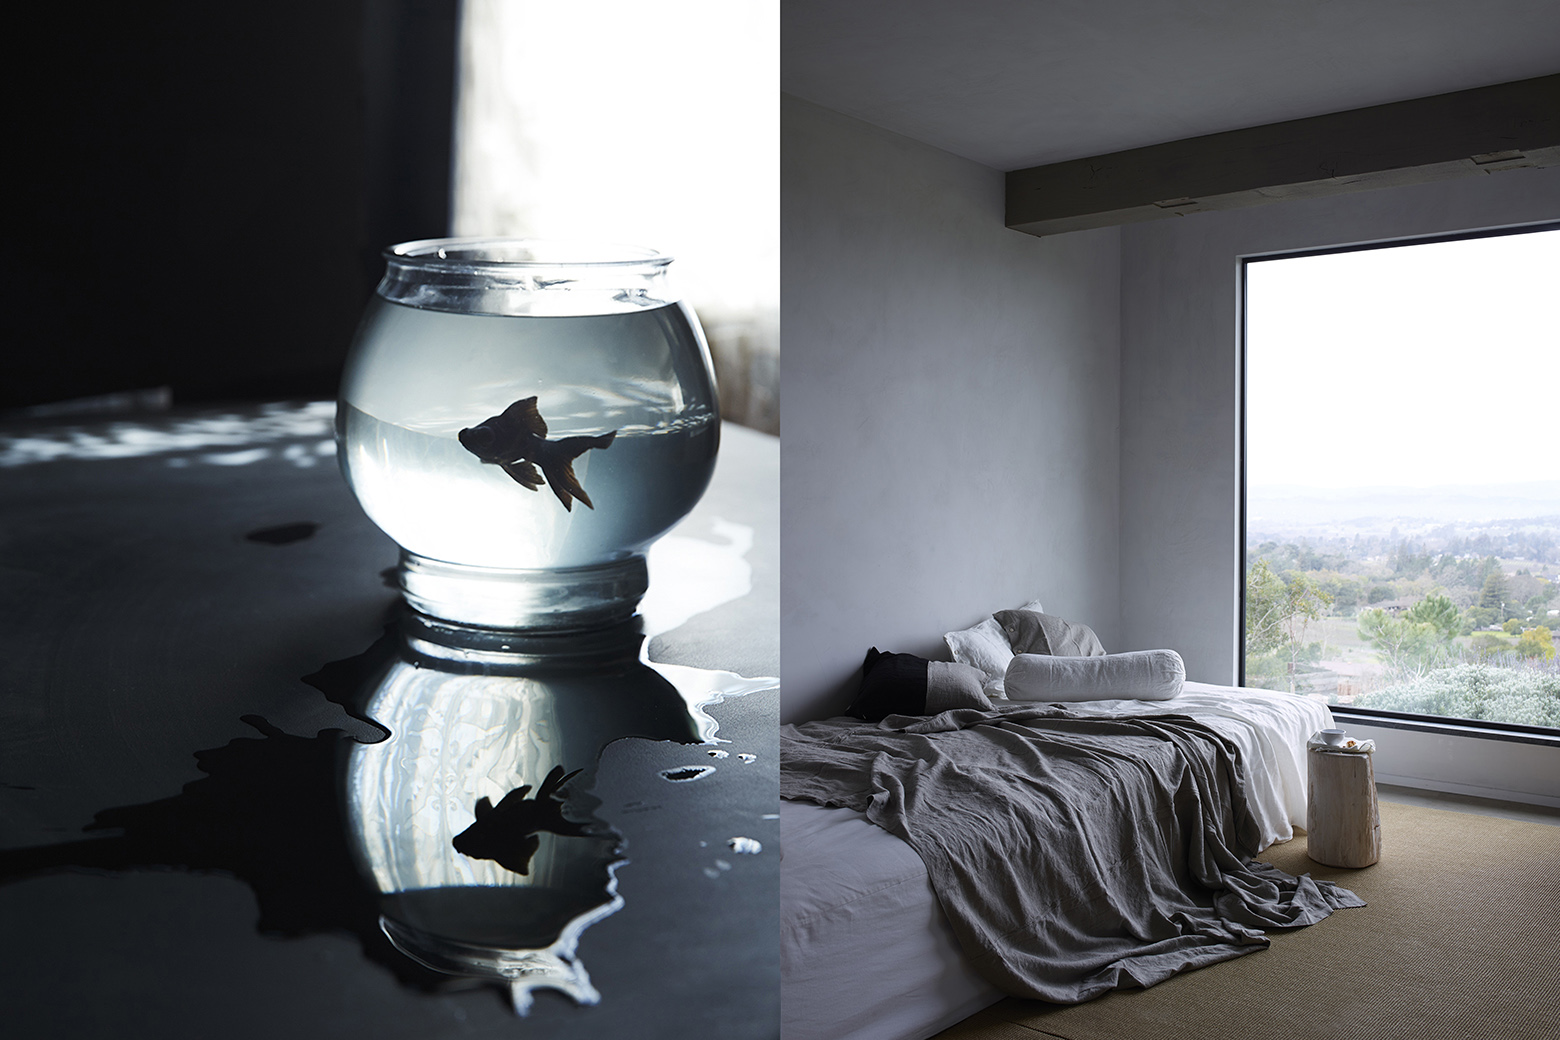 Spaces: Fish and Bed